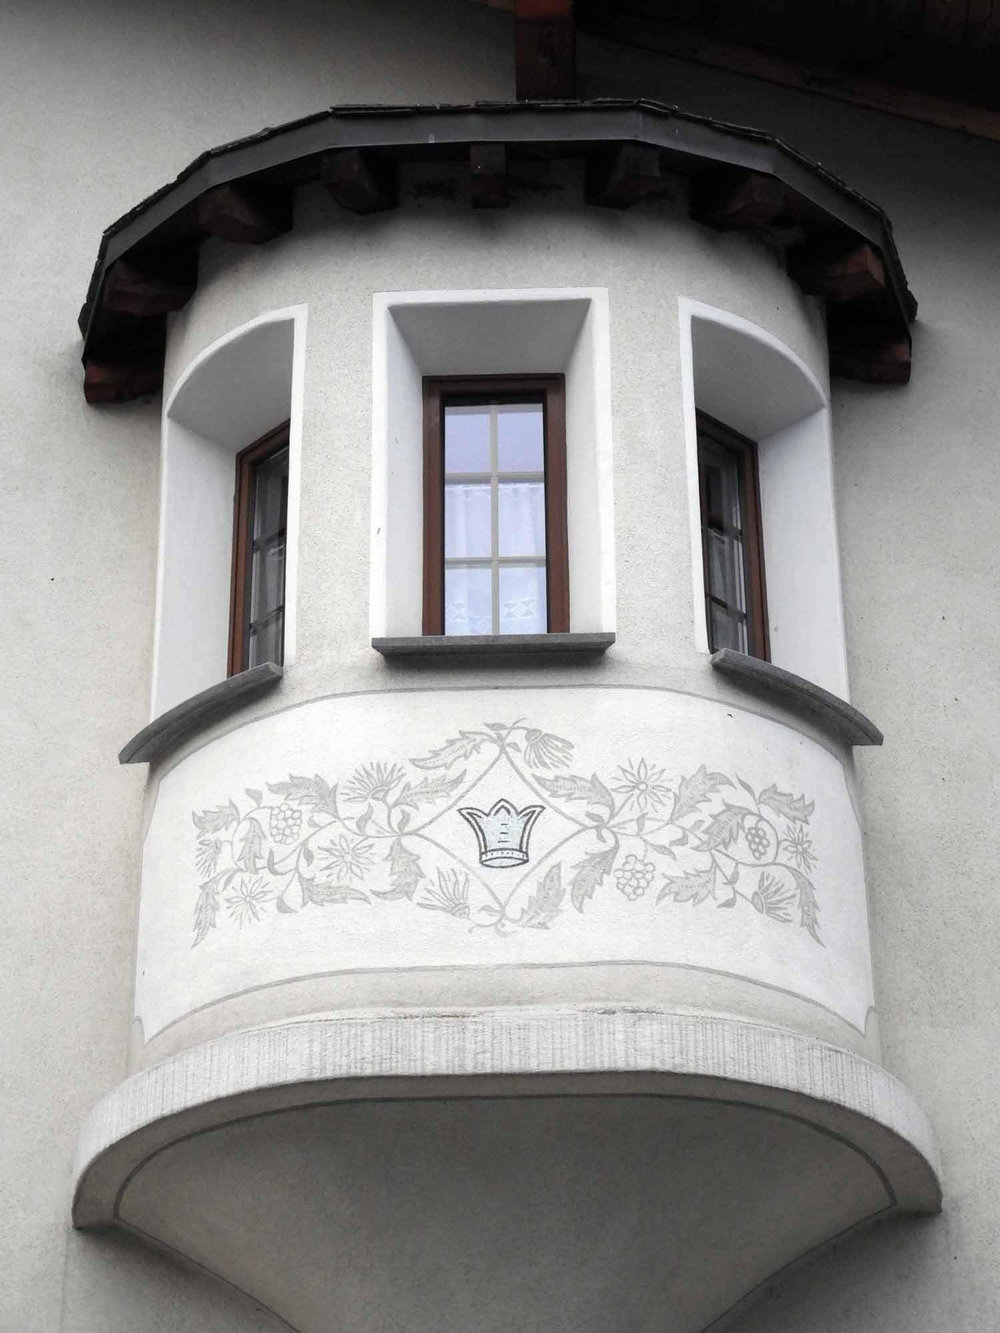 switzerland-oberalppass-vorderrhein-river-valley-round-bay-window-popout.JPG